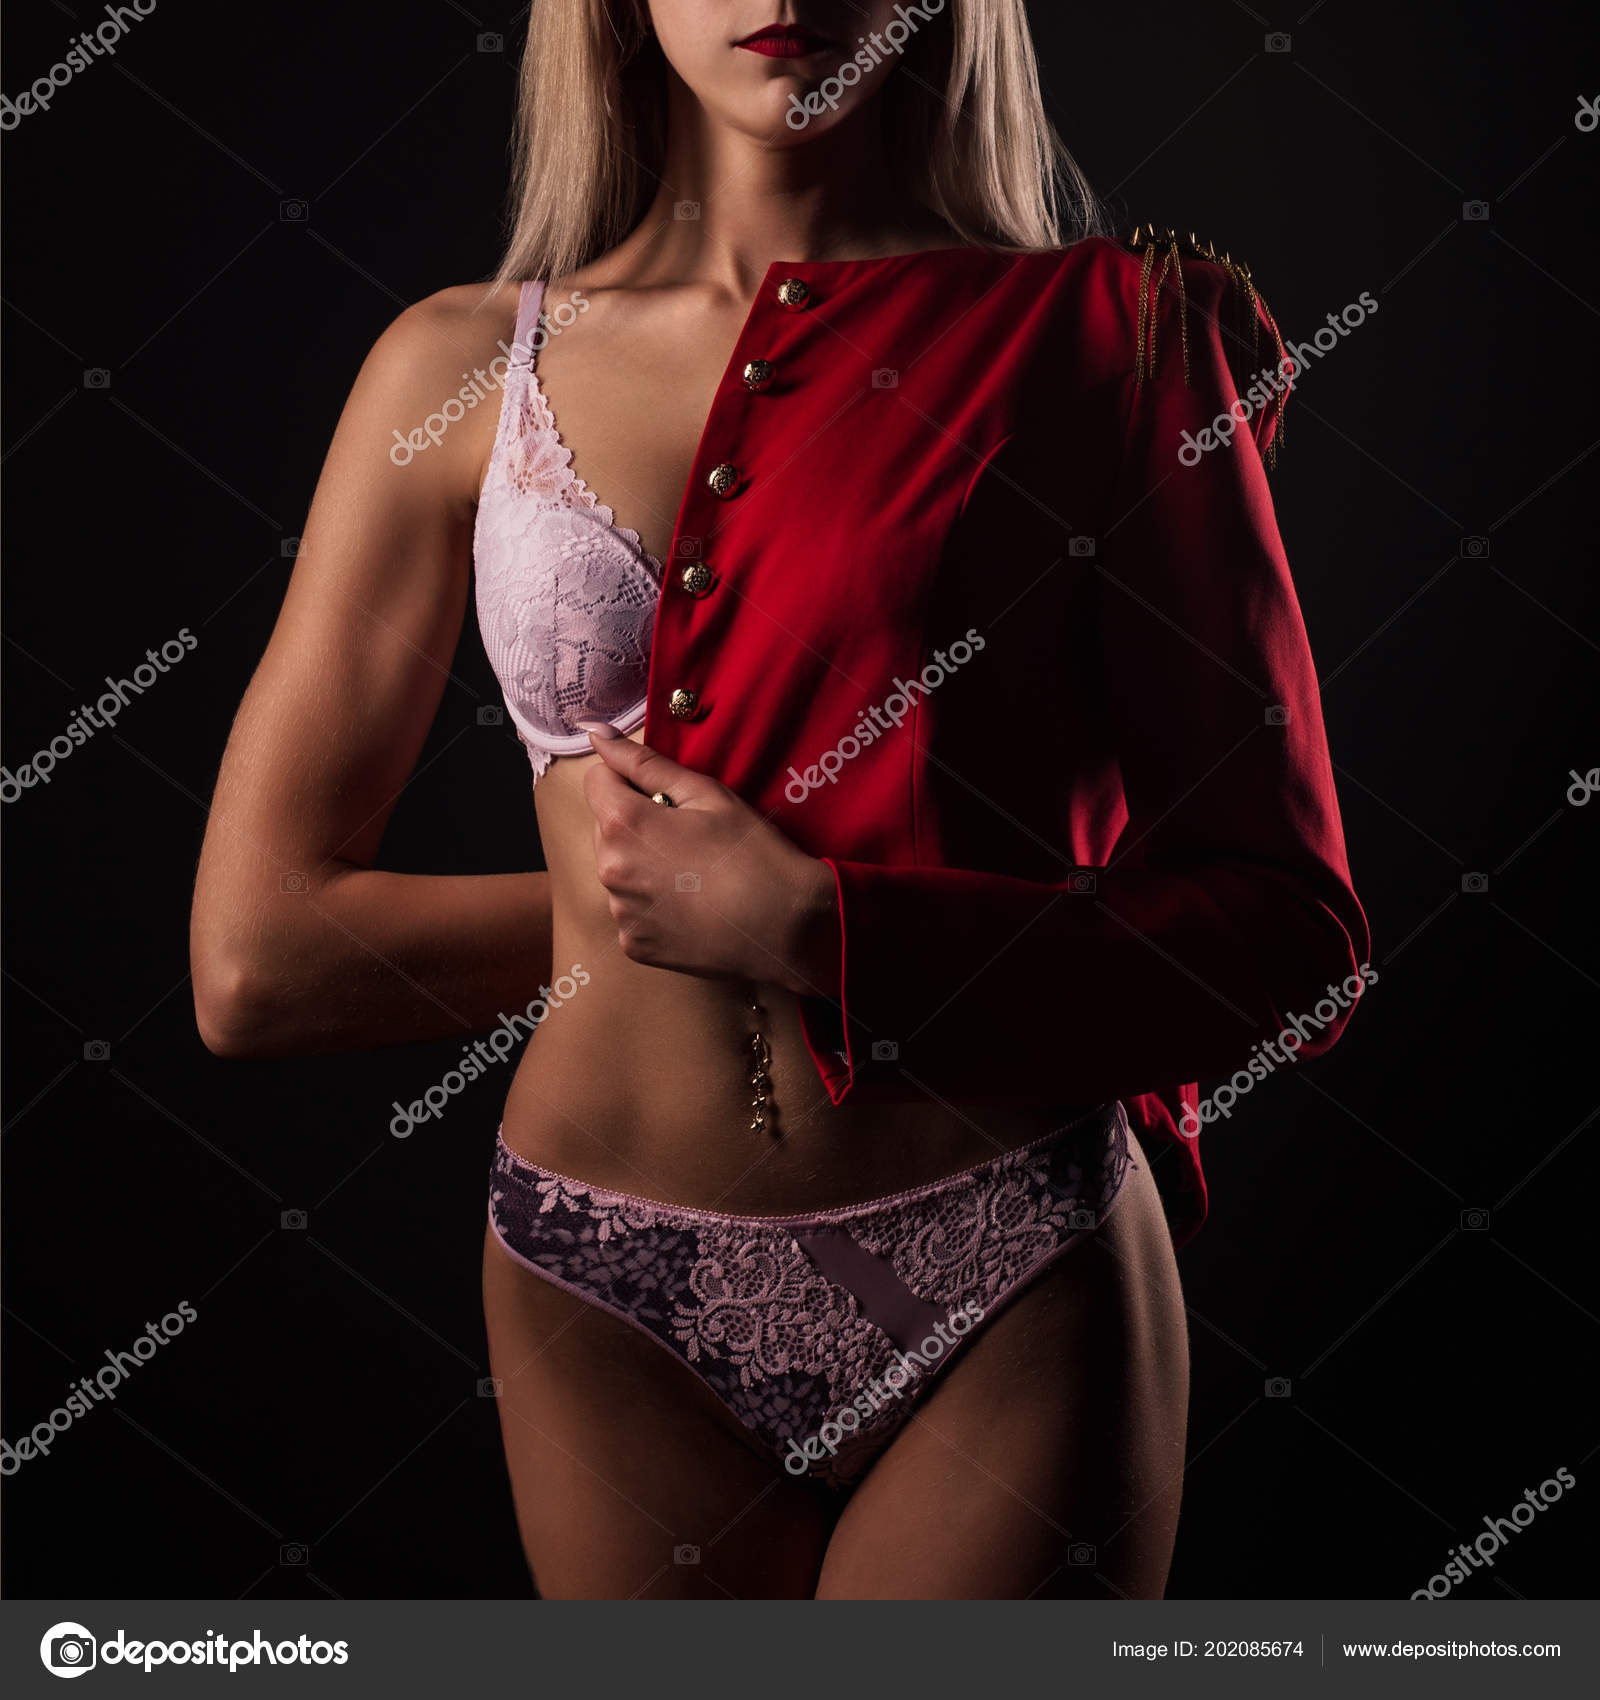 4915e16d05f Blonde young woman in lace lingerie and red jacket on dark background– stock  image